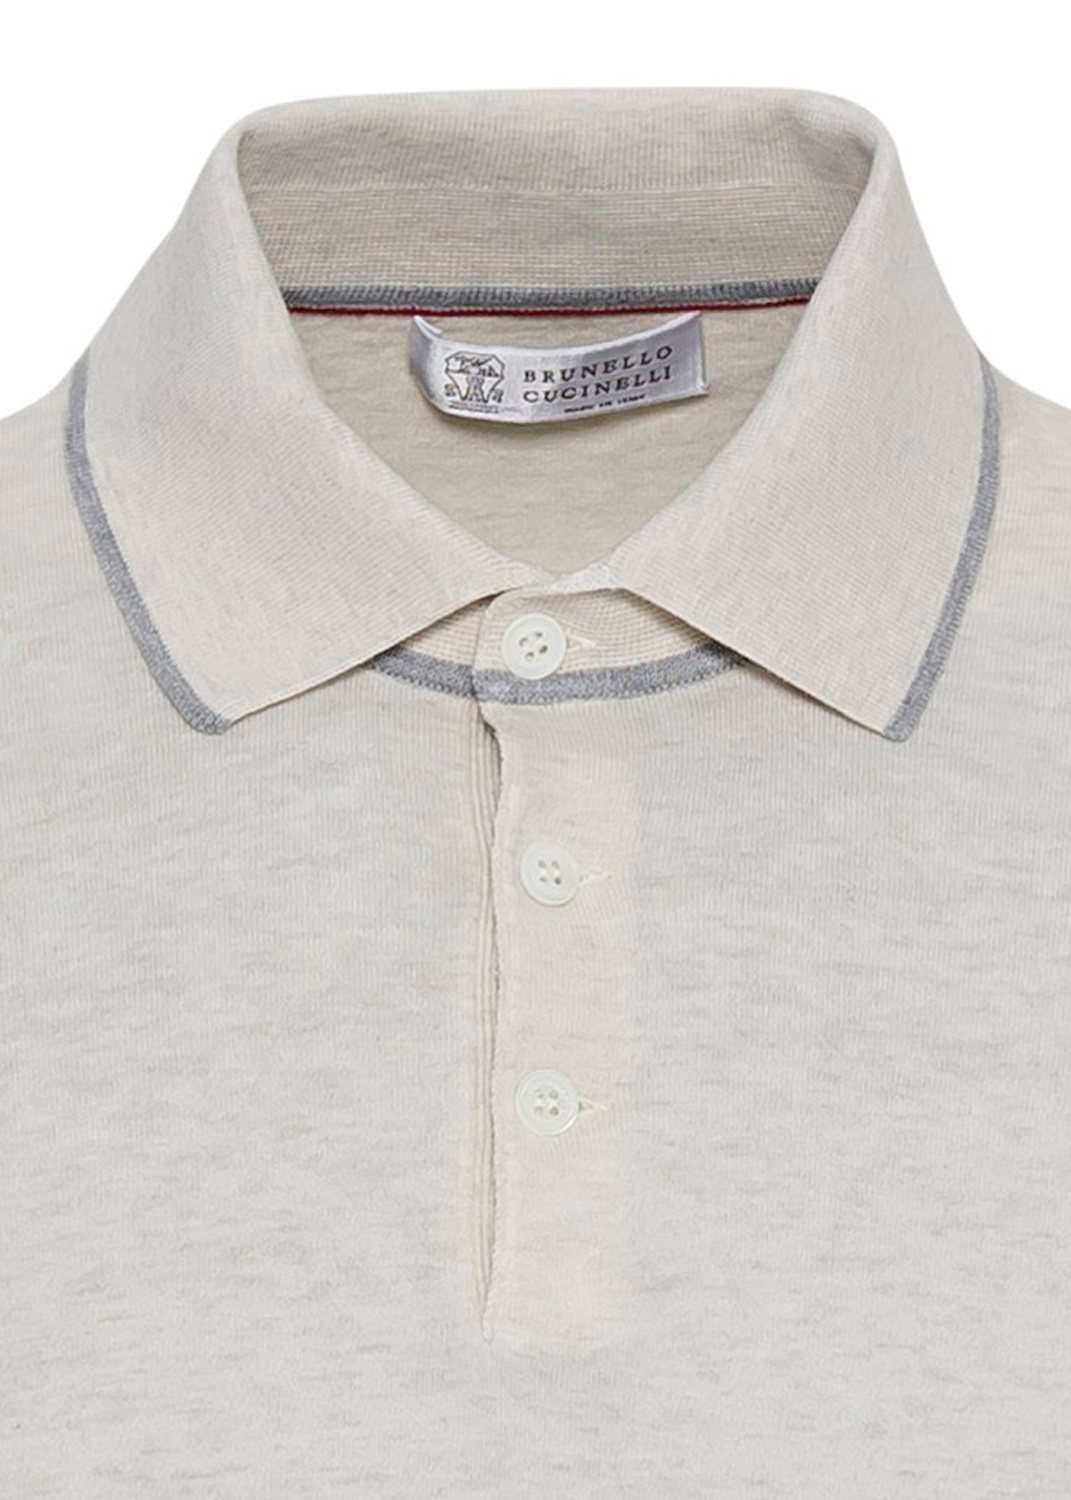 Short Sleeve knitted Polo superlight cotton image number 2